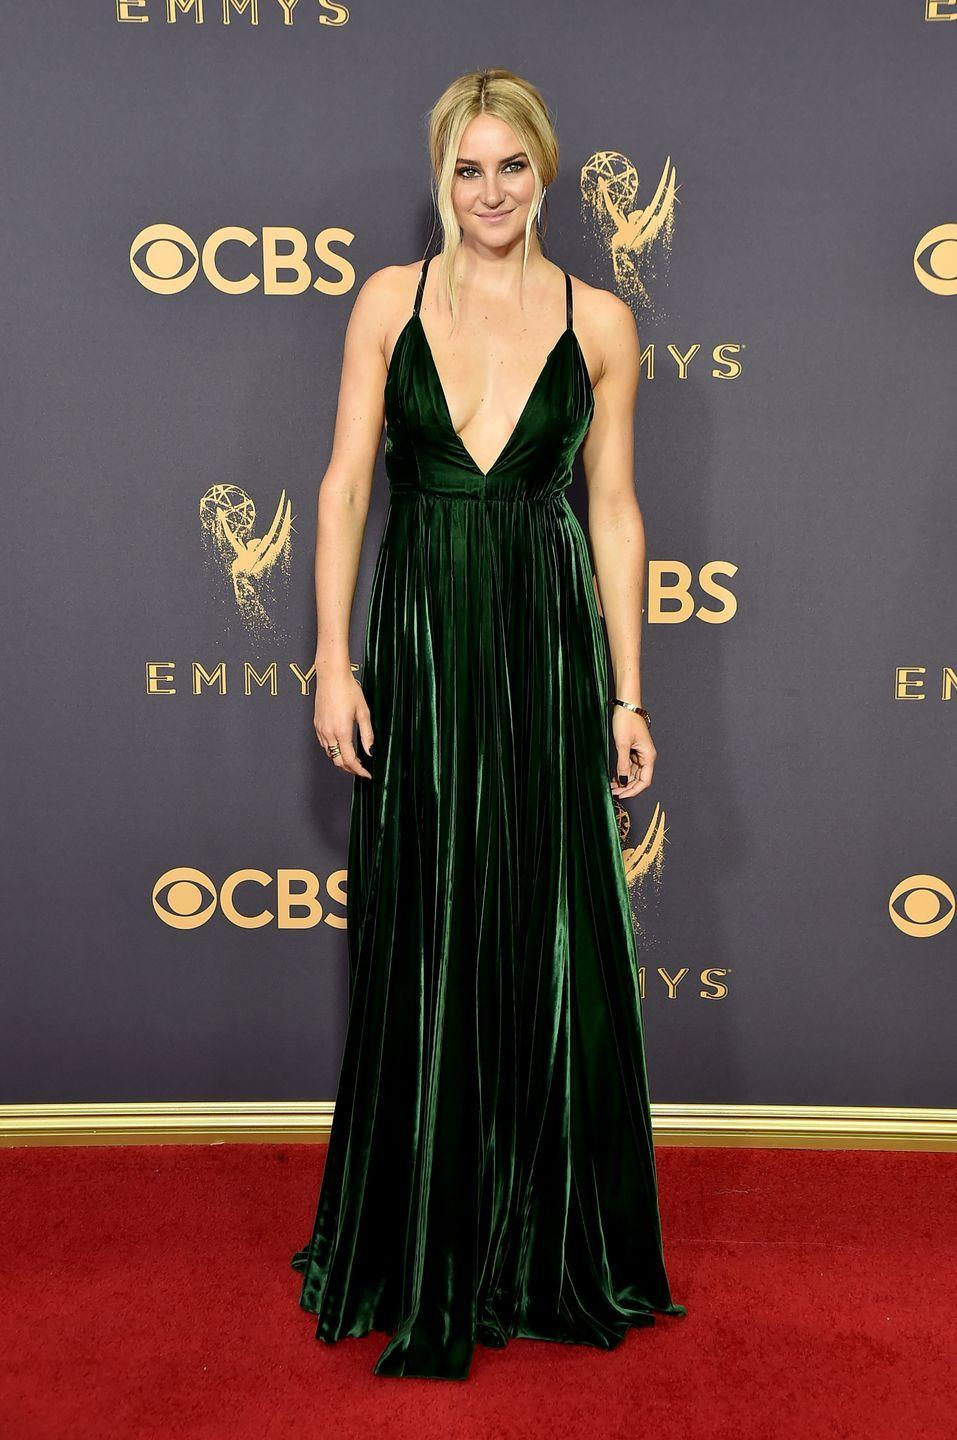 <p>The dark green velvet fabric on Shailene Woodley's Ralph Lauren evening gown looks like it could have been made from Merida's dress. </p>